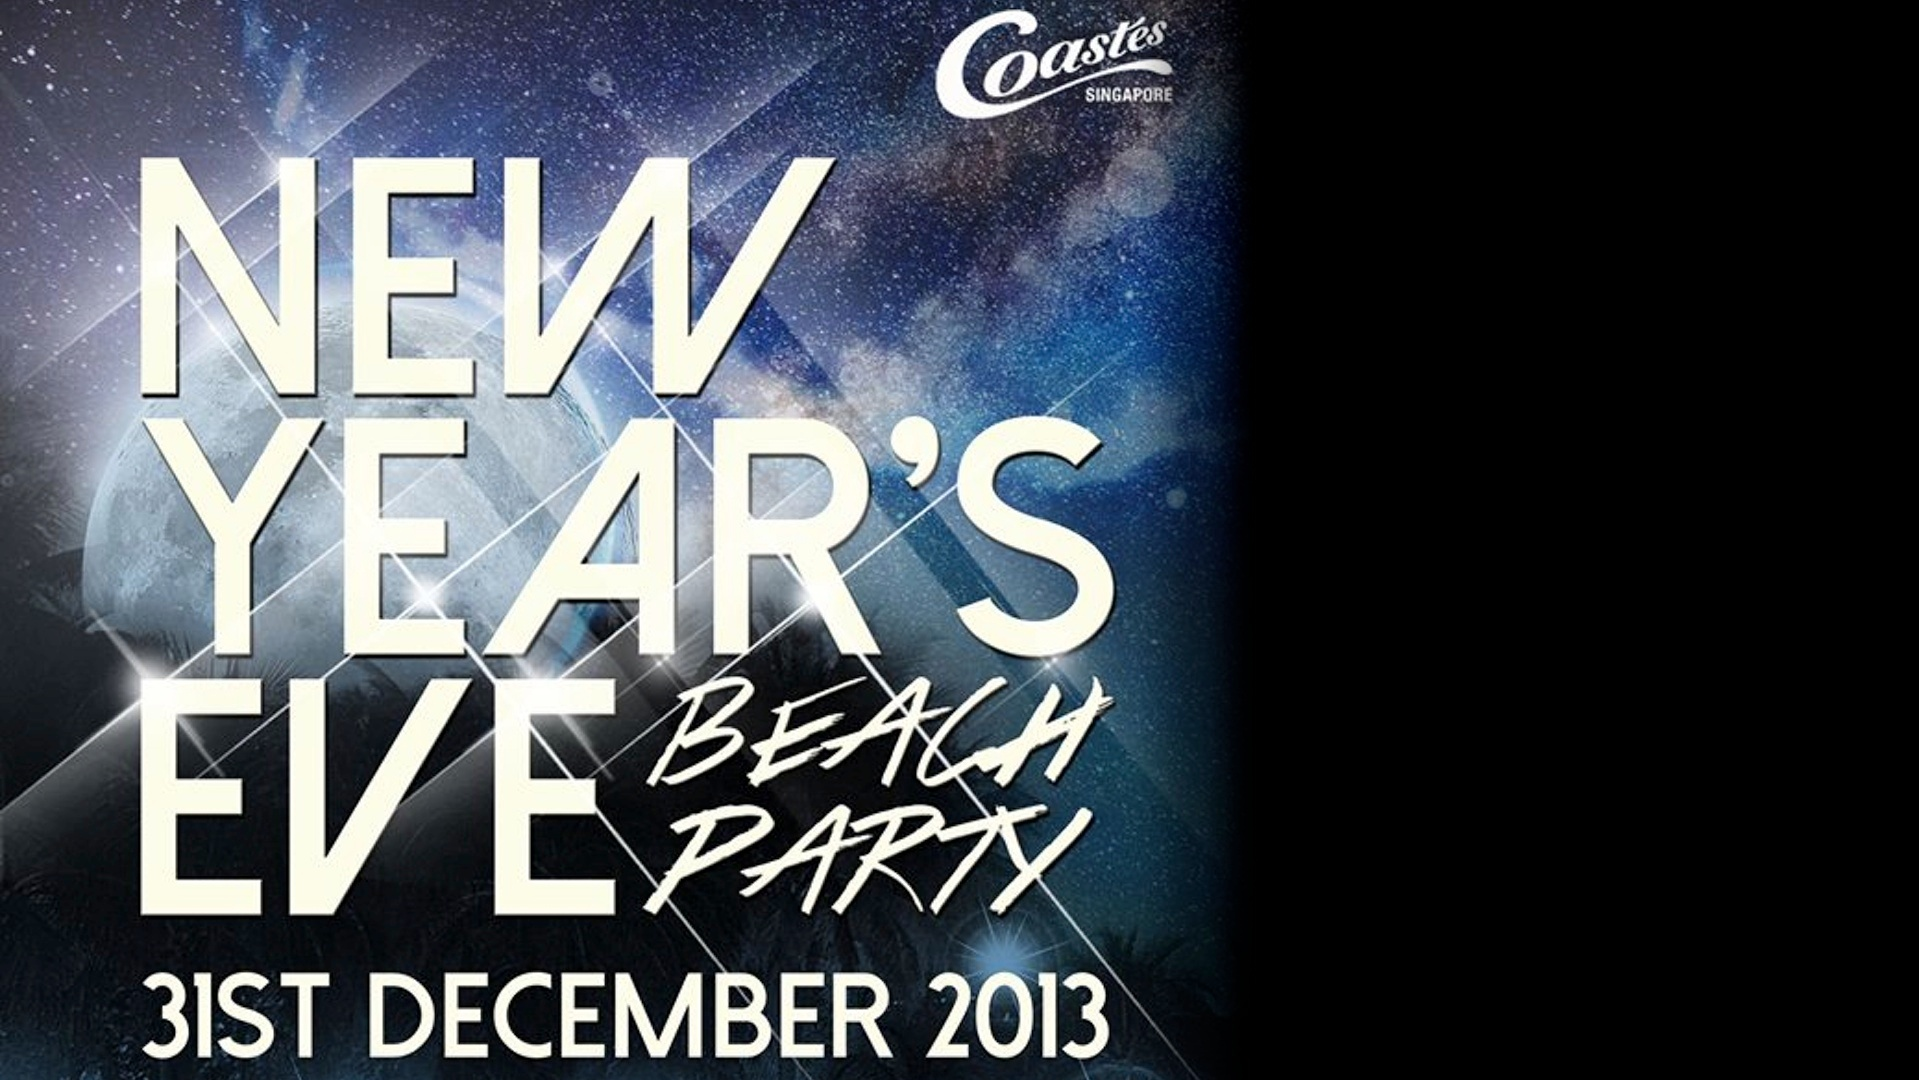 New Year's Eve @ Coastes